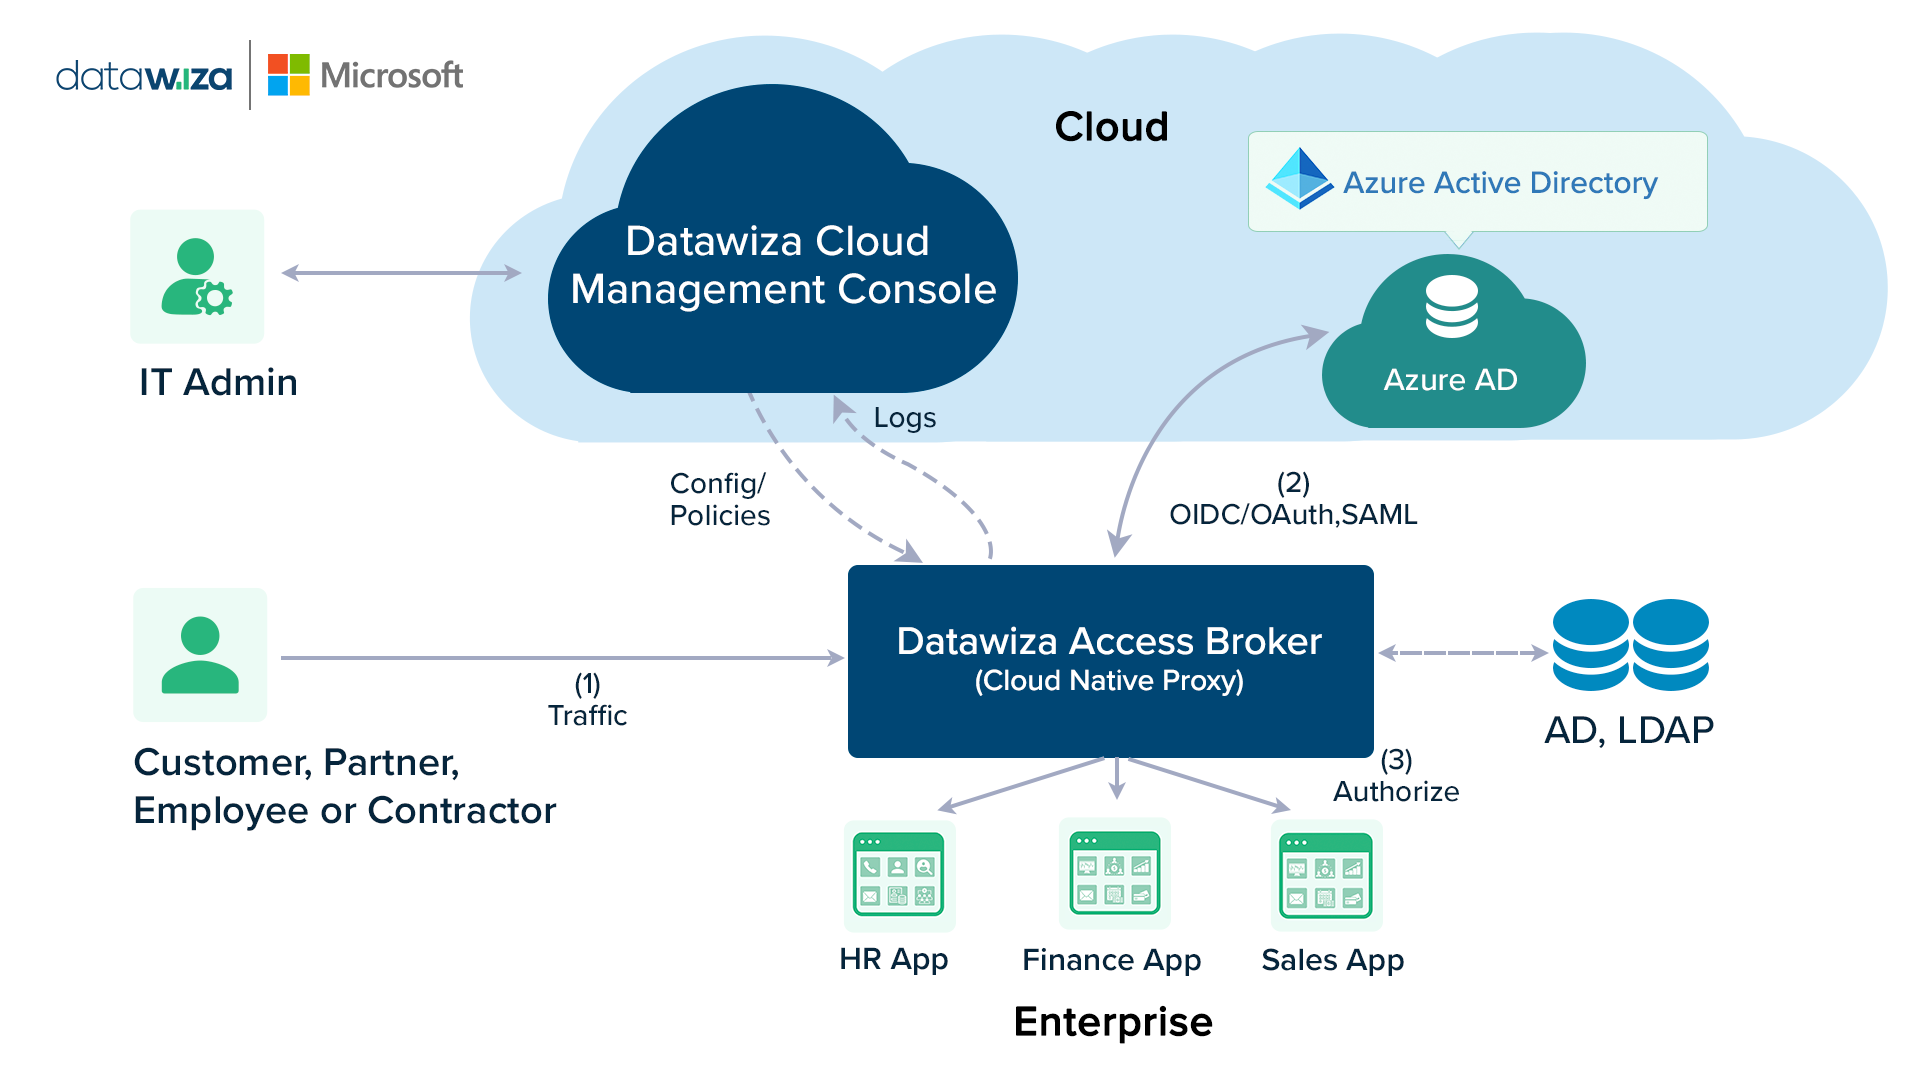 Illustration of Datawiza and Microsoft integration with Azure Active Directory